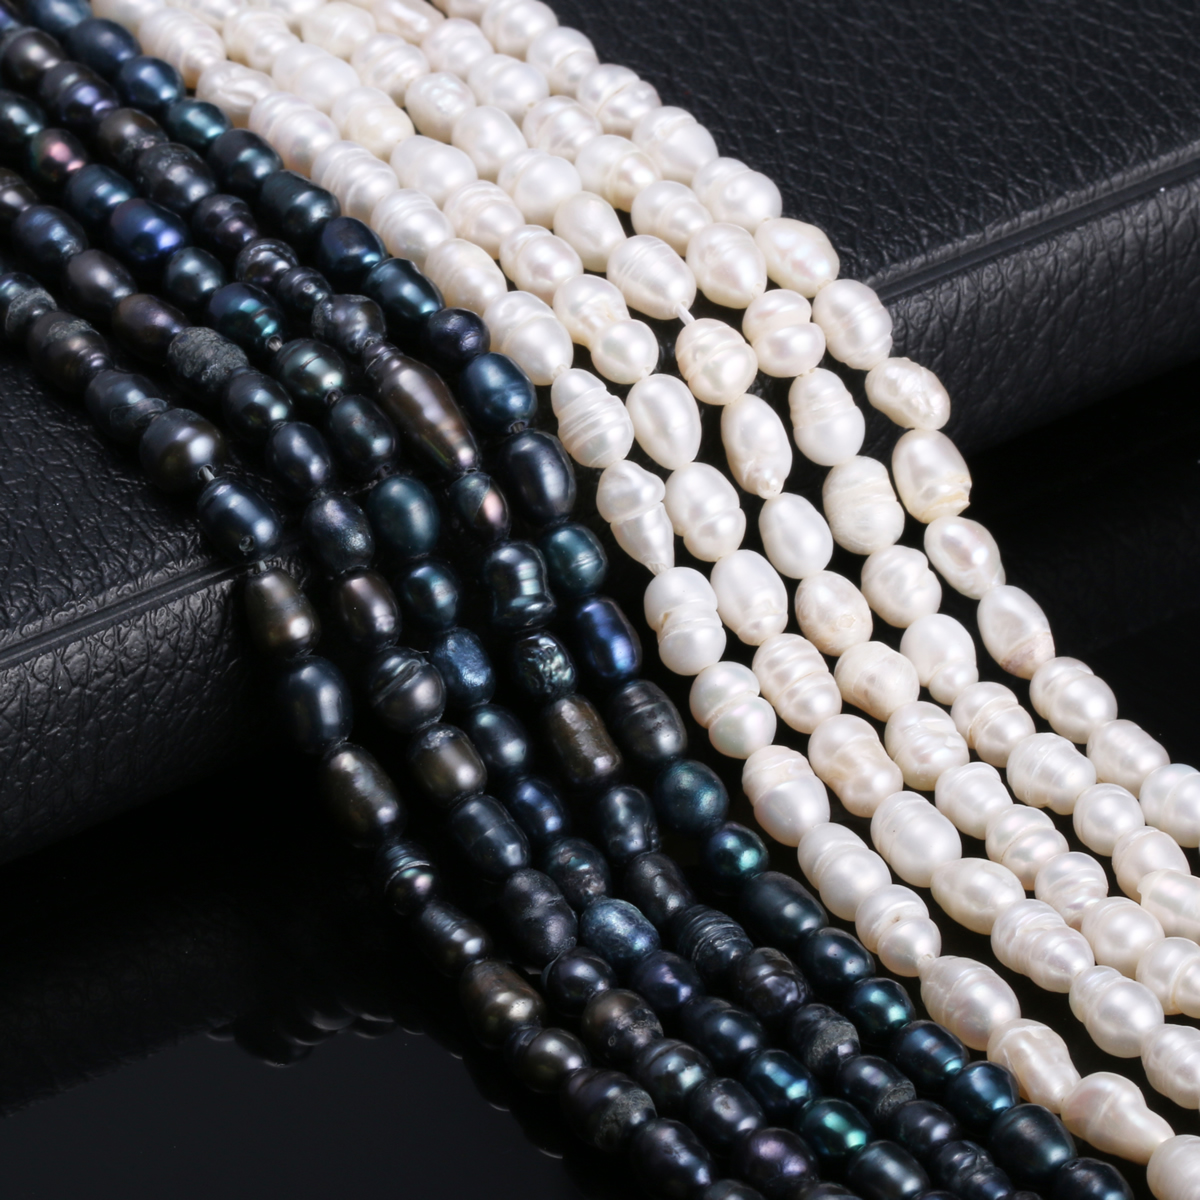 Natural Freshwater Cultured Pearls Beads Rice Shape 100% Natural Pearls For Jewelry Making DIY Strand 13 Inches Size 5-6mm